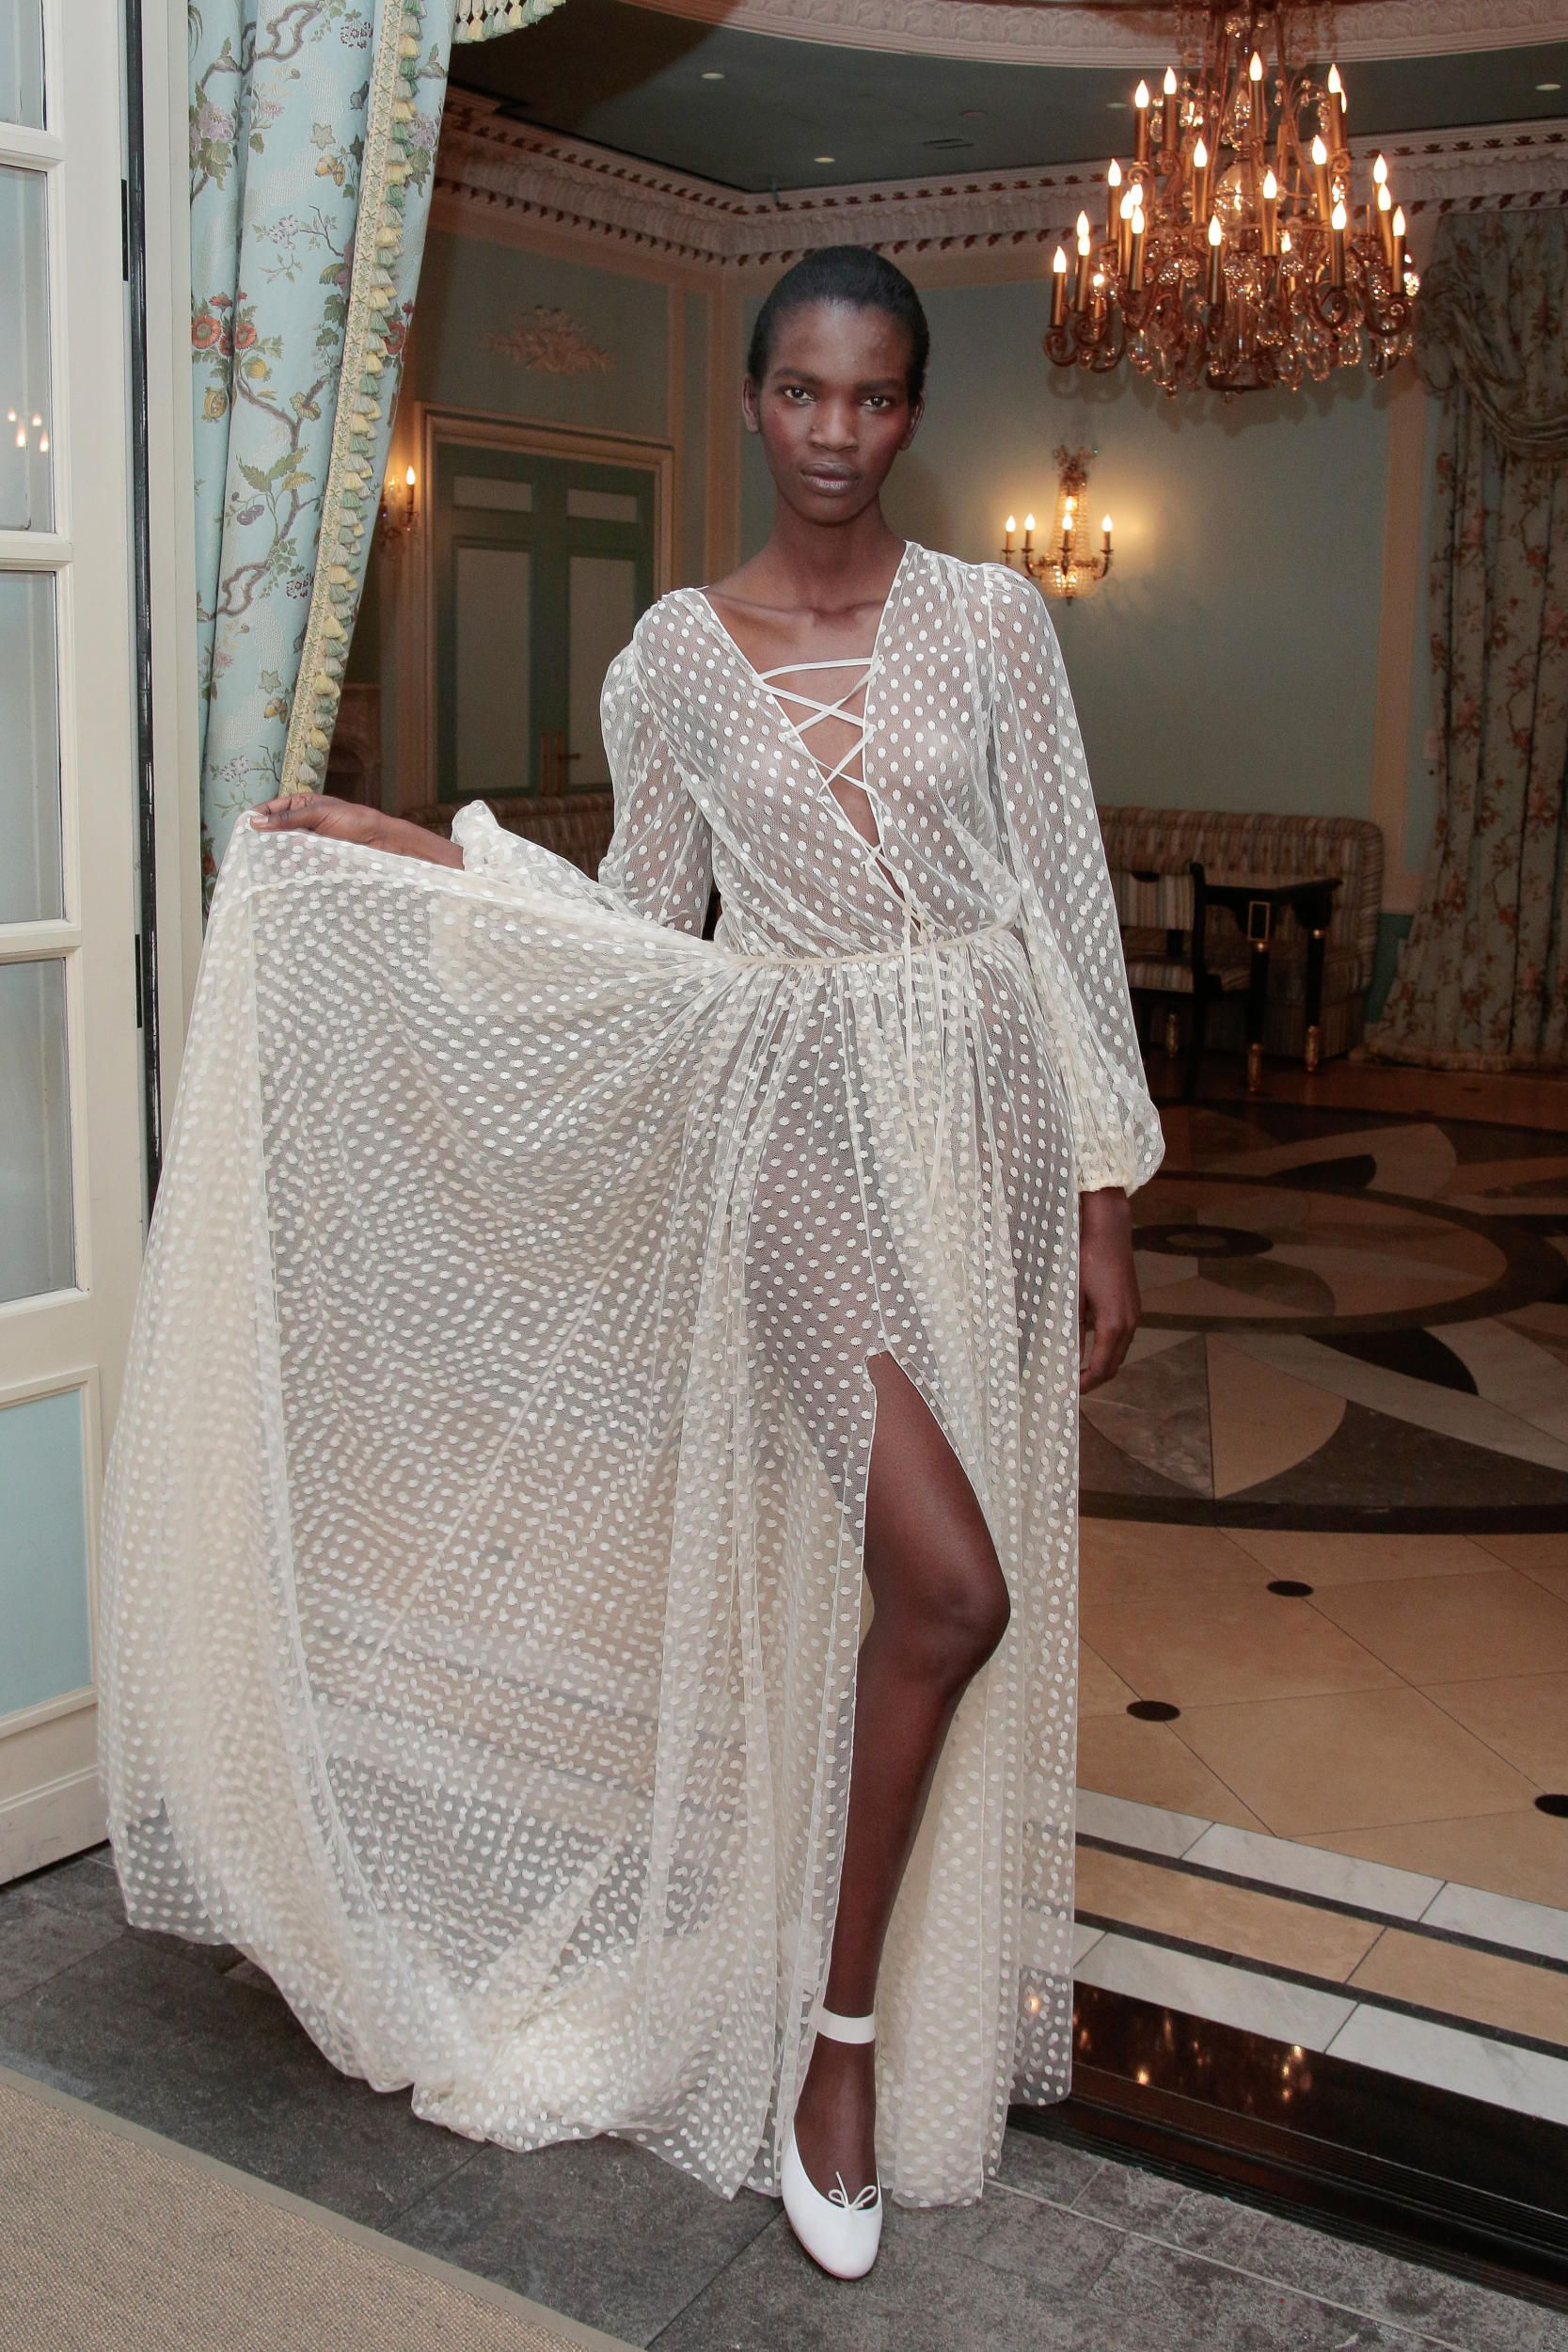 e25206baca4 The 10 Biggest Bridal Trends for Spring 2017 - Fashionista